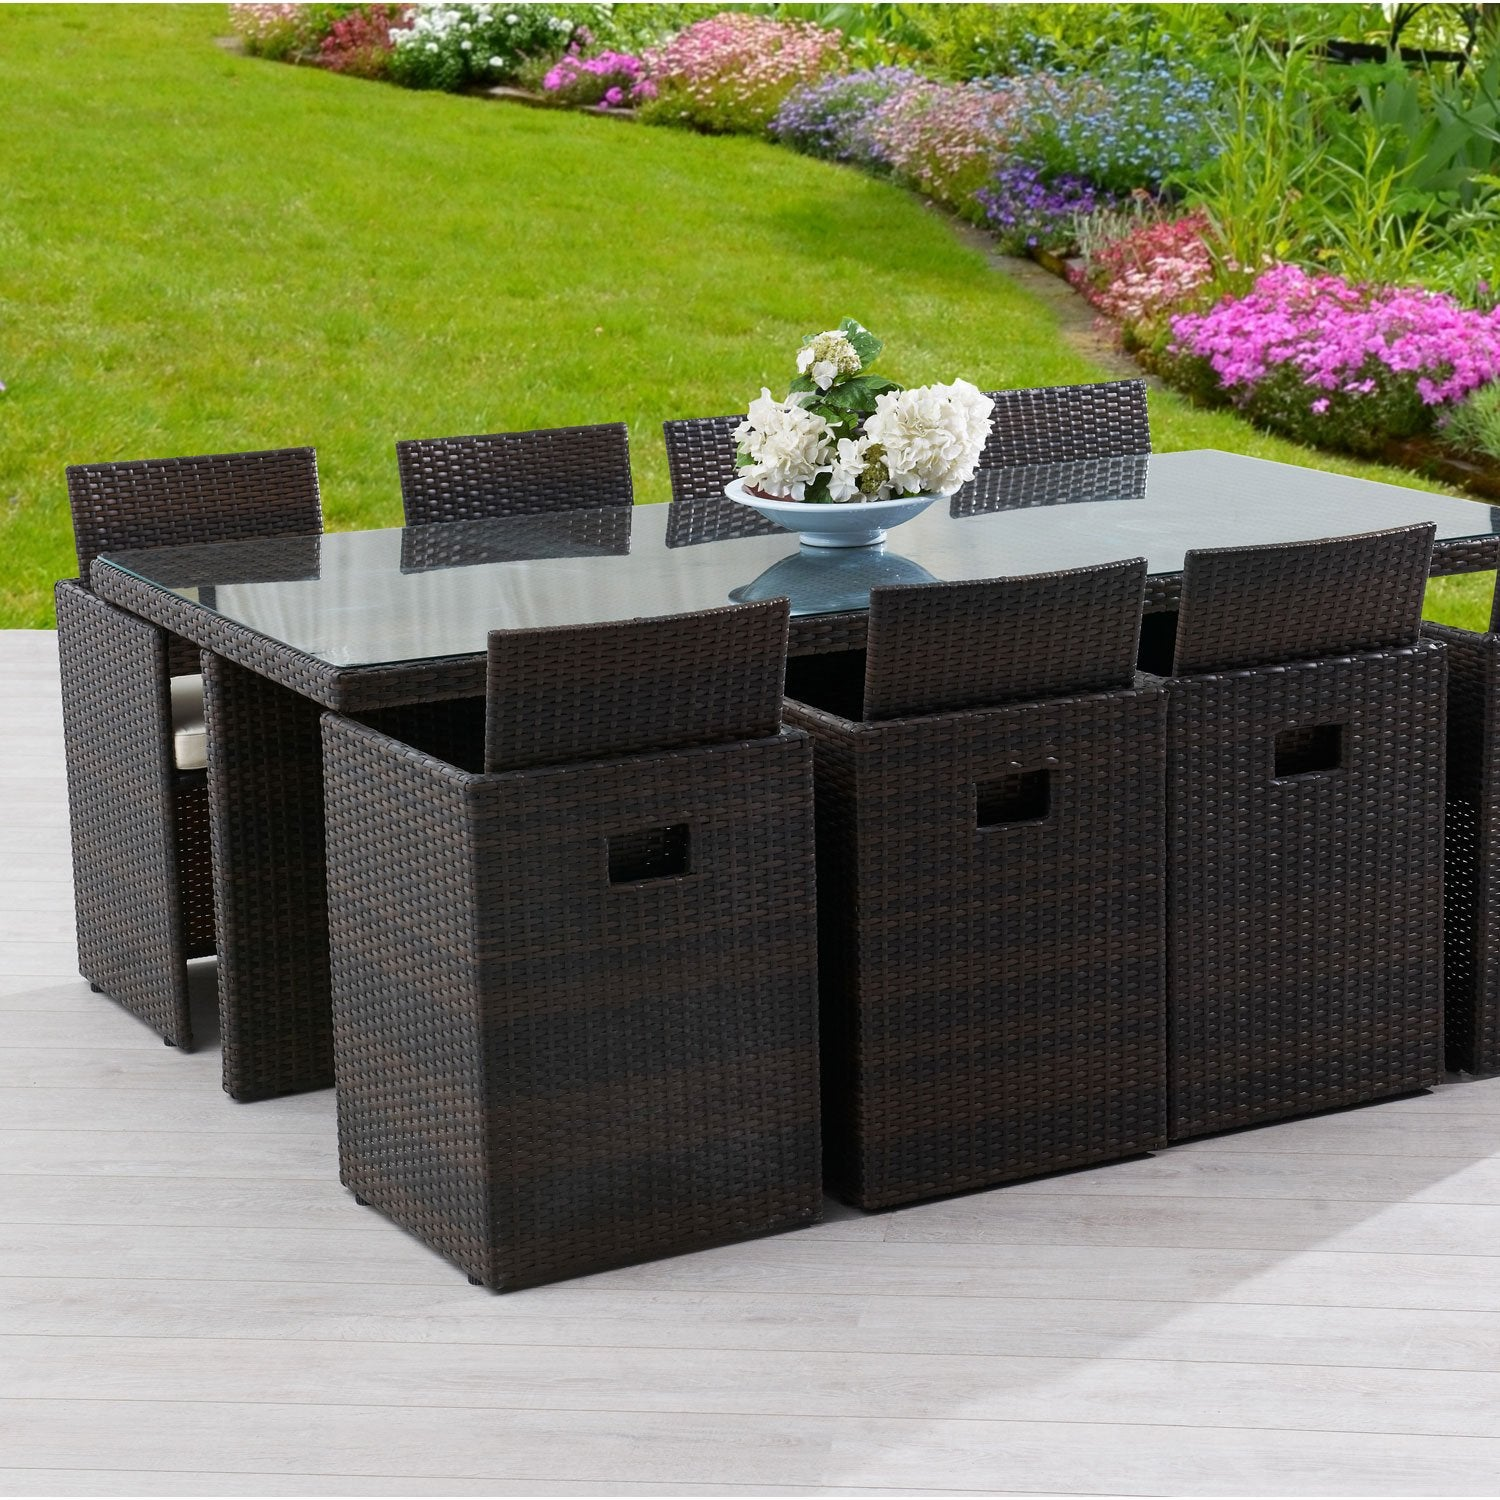 Salon de jardin encastrable r sine tress e marron 1 table for Salon de jardin en resine carrefour